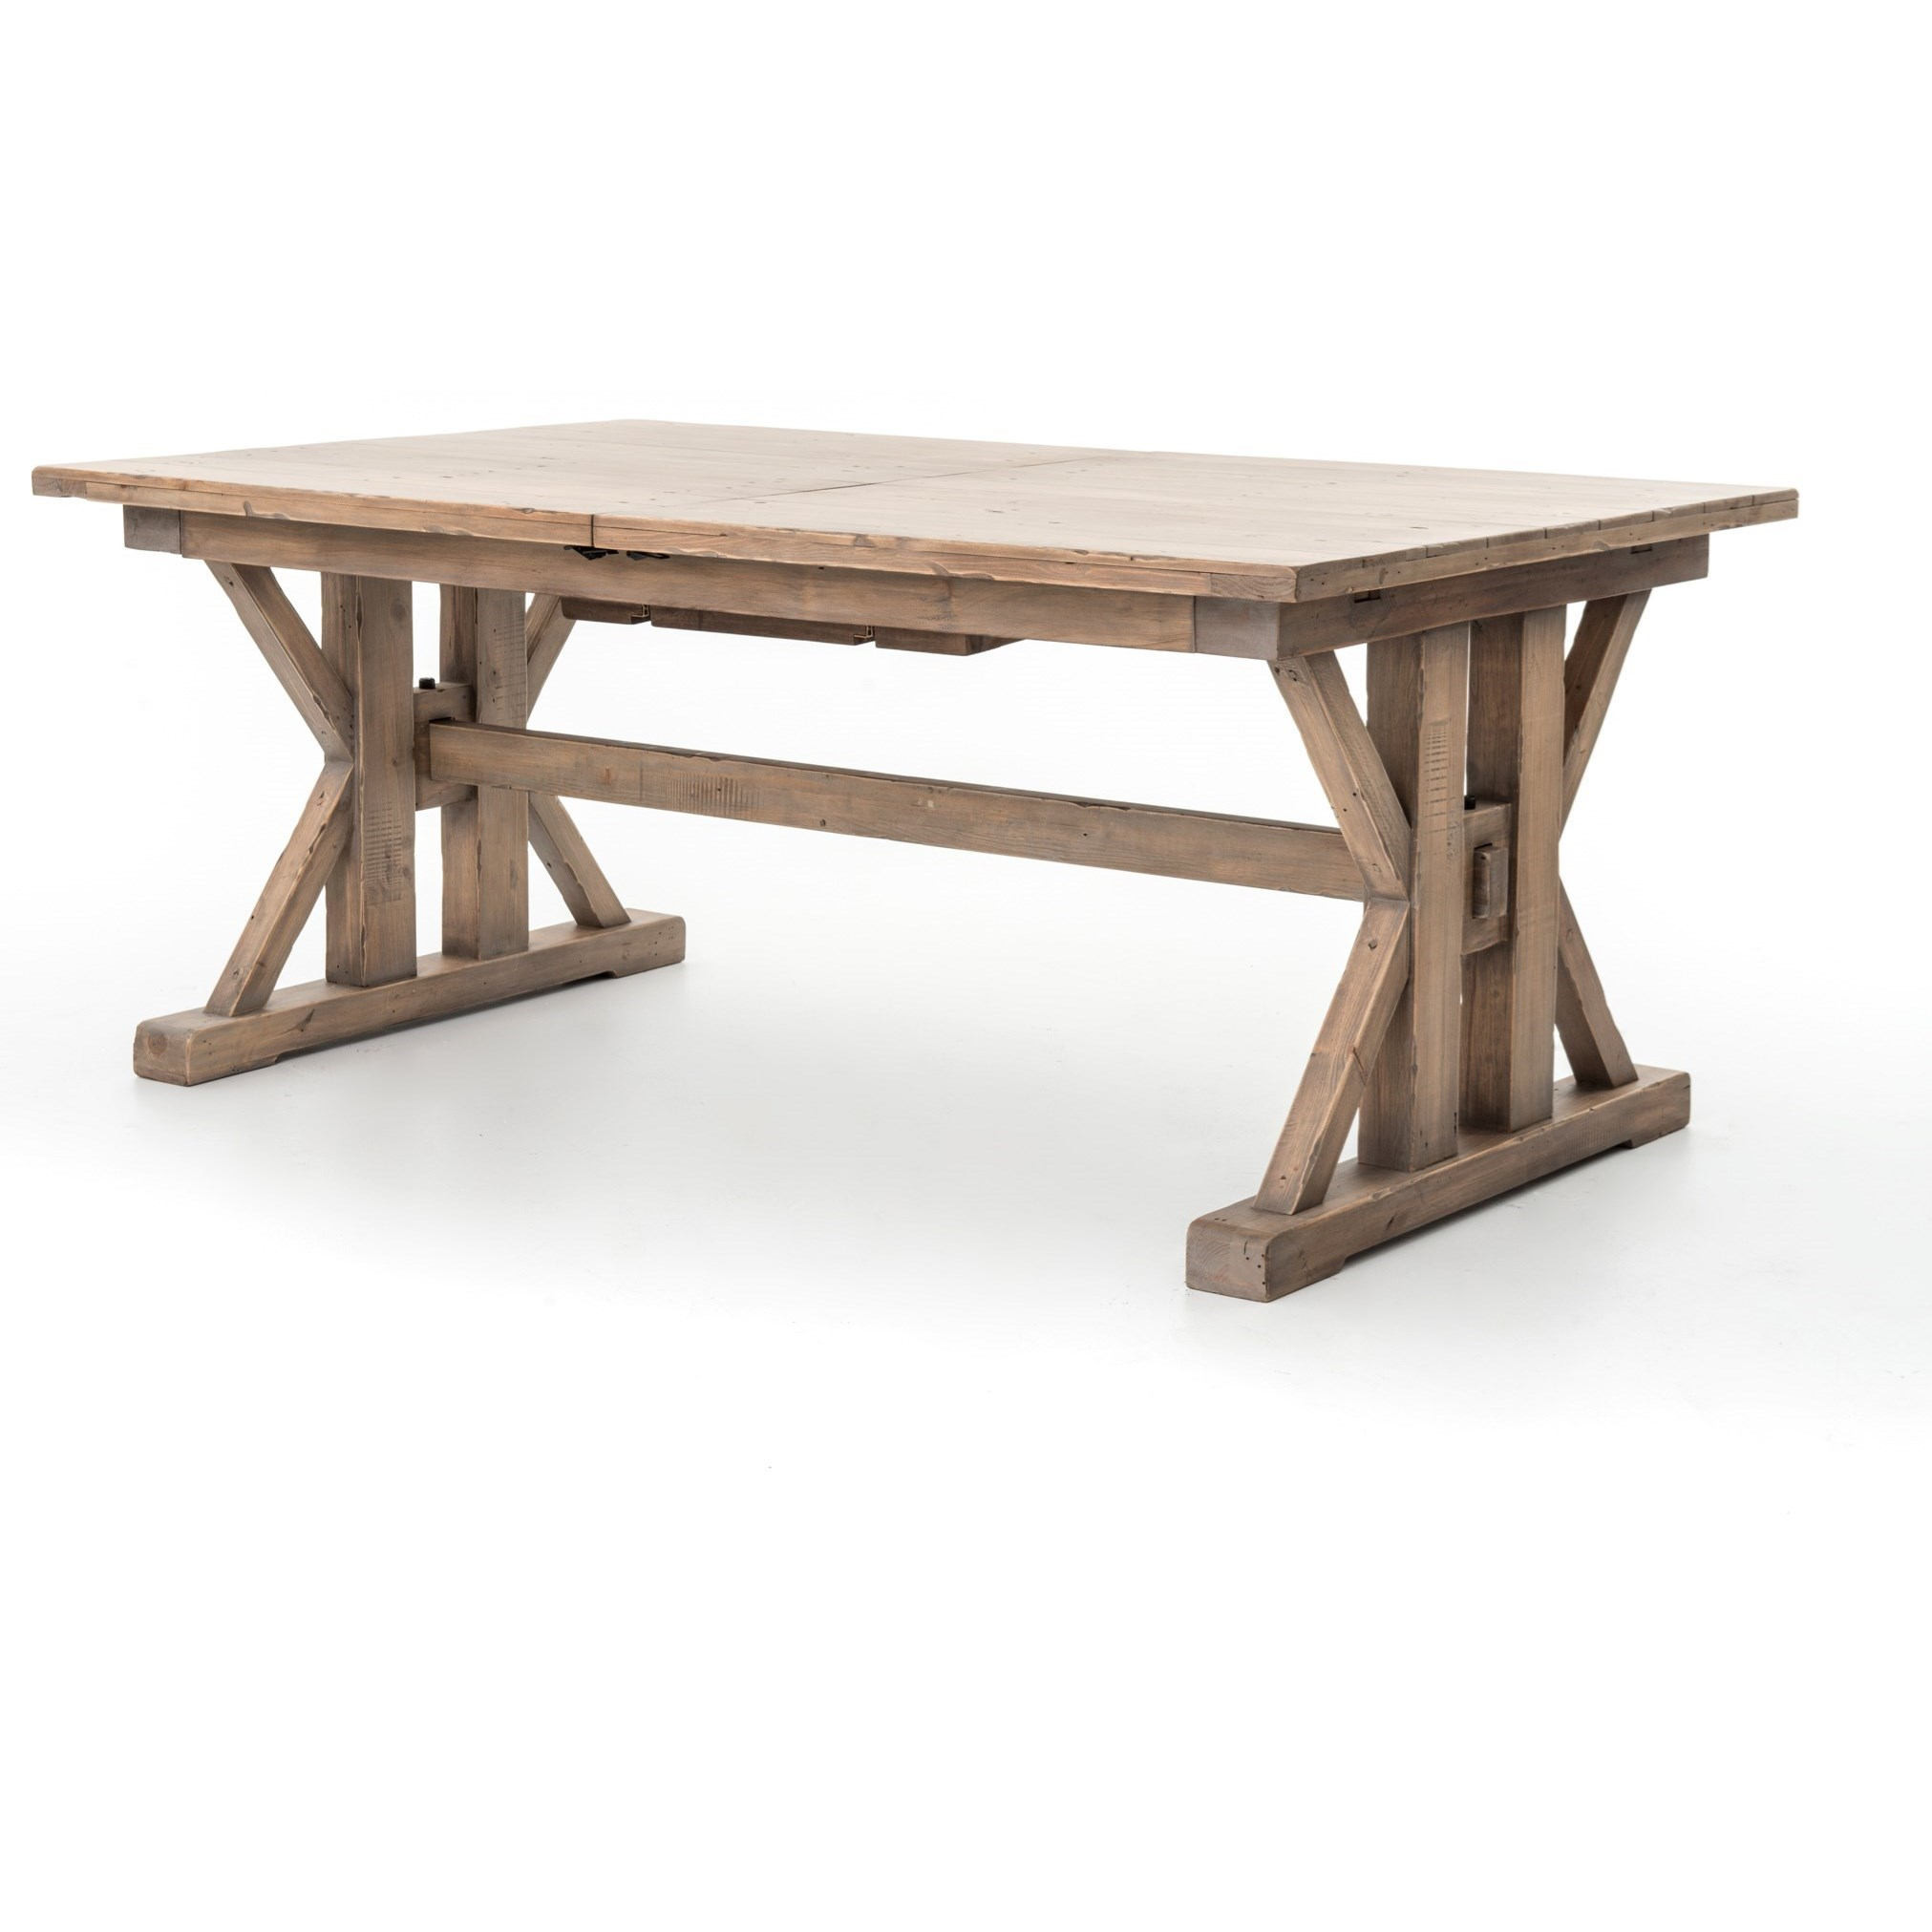 Four Hands Tuscan Spring Tuscan Spring Dining Table - Item Number: VTUD-05-10